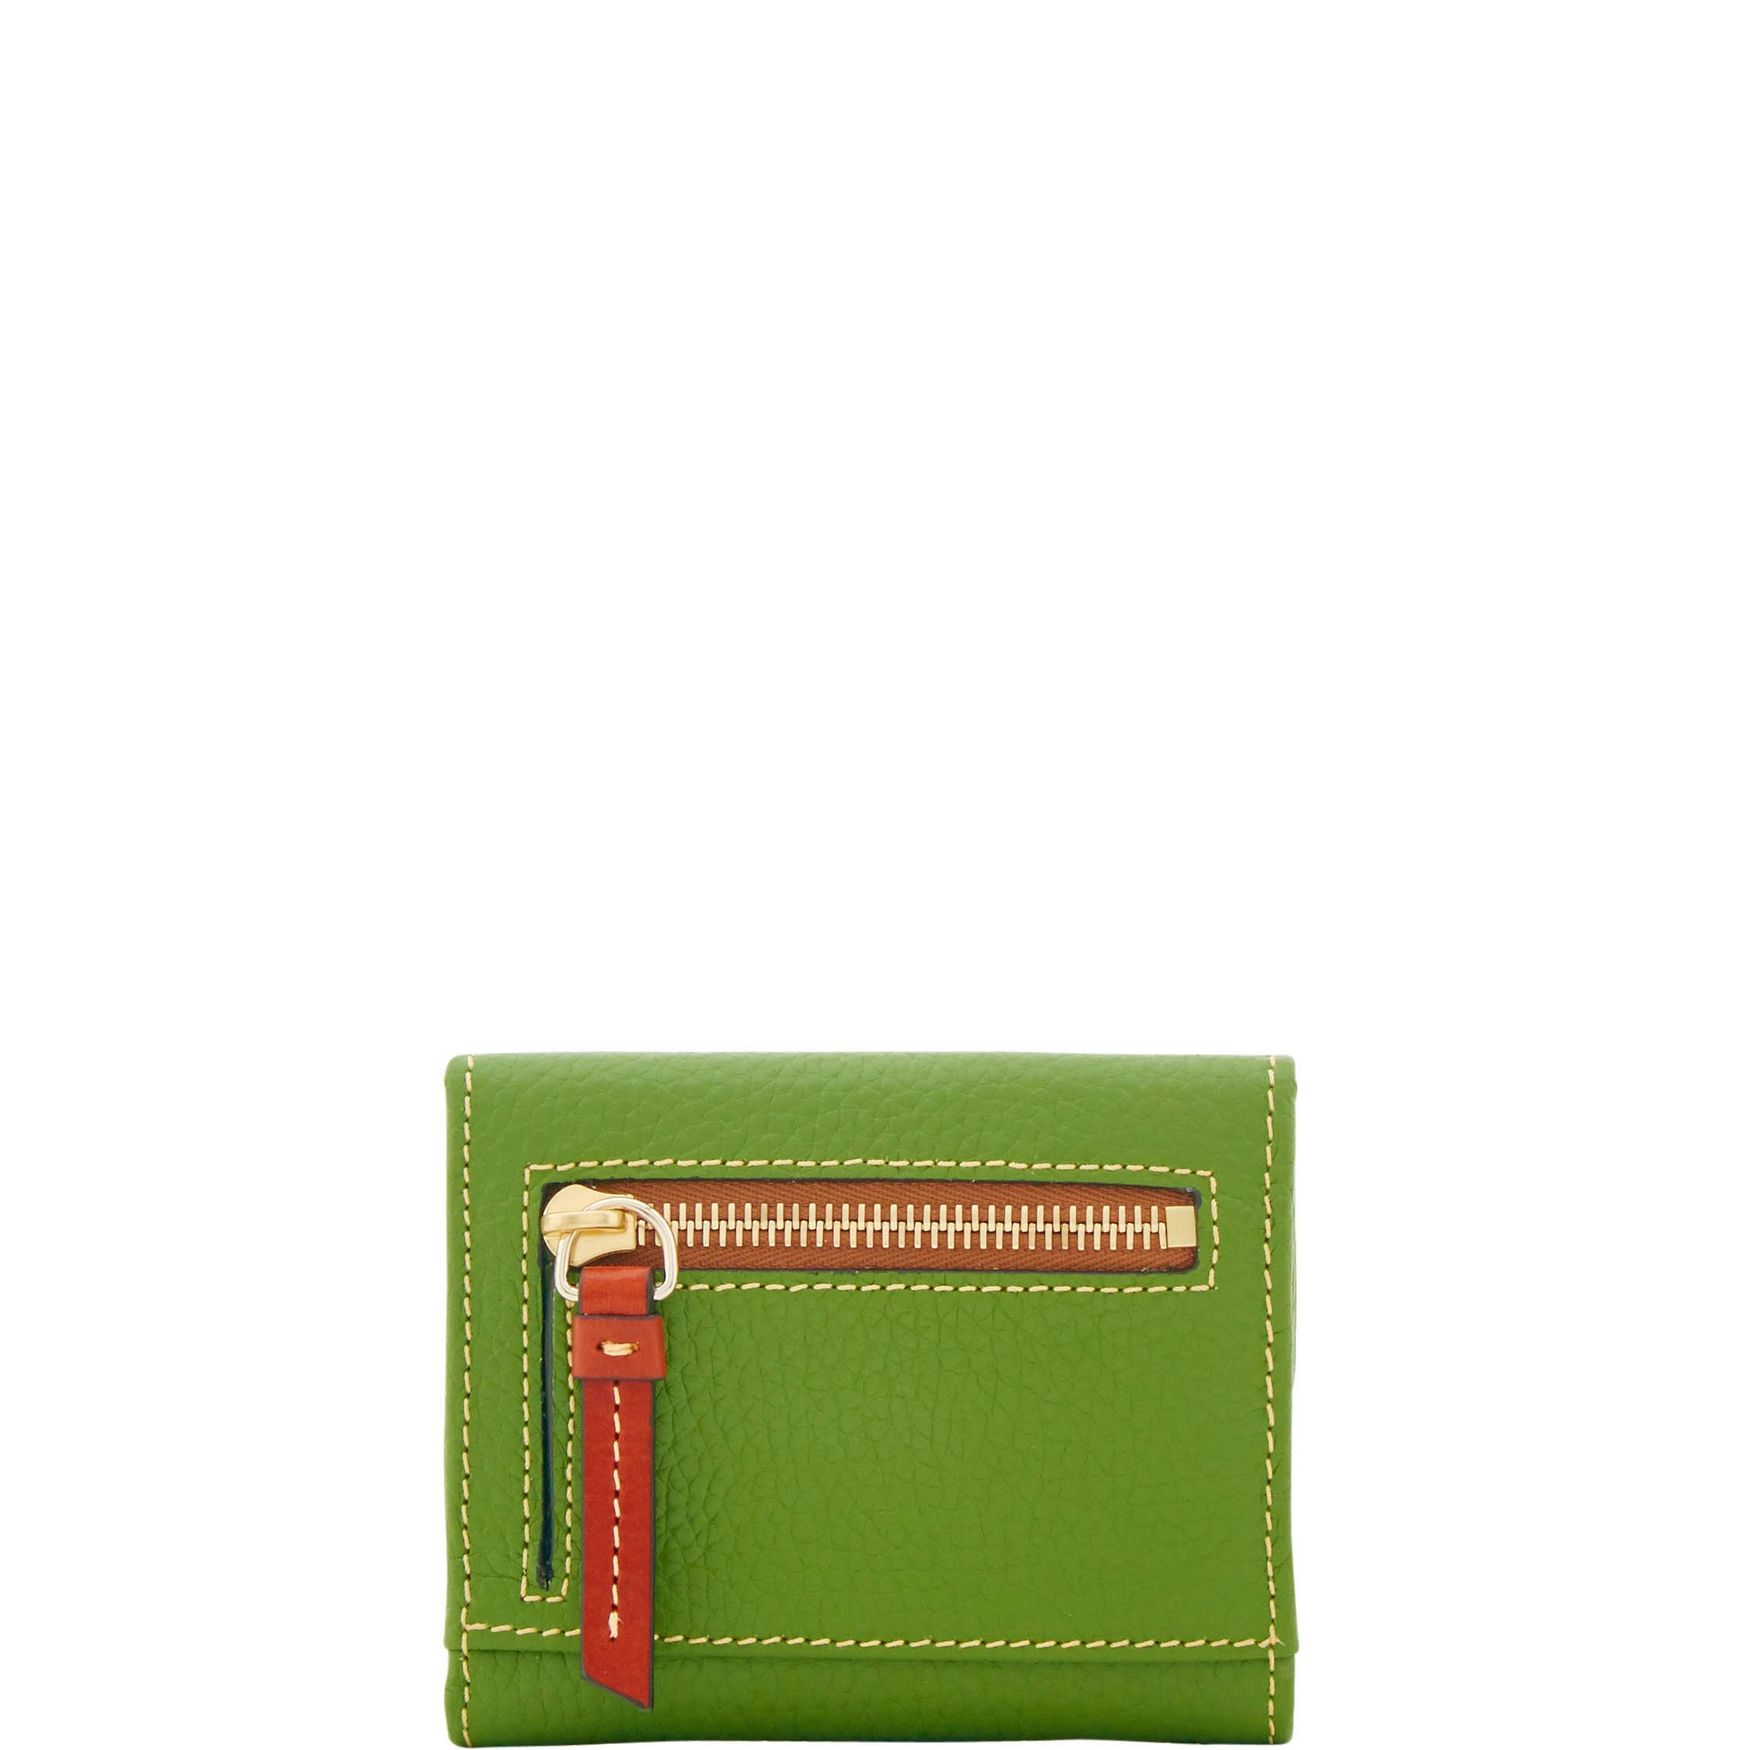 Dooney-amp-Bourke-Pebble-Grain-Small-Flap-Wallet thumbnail 42